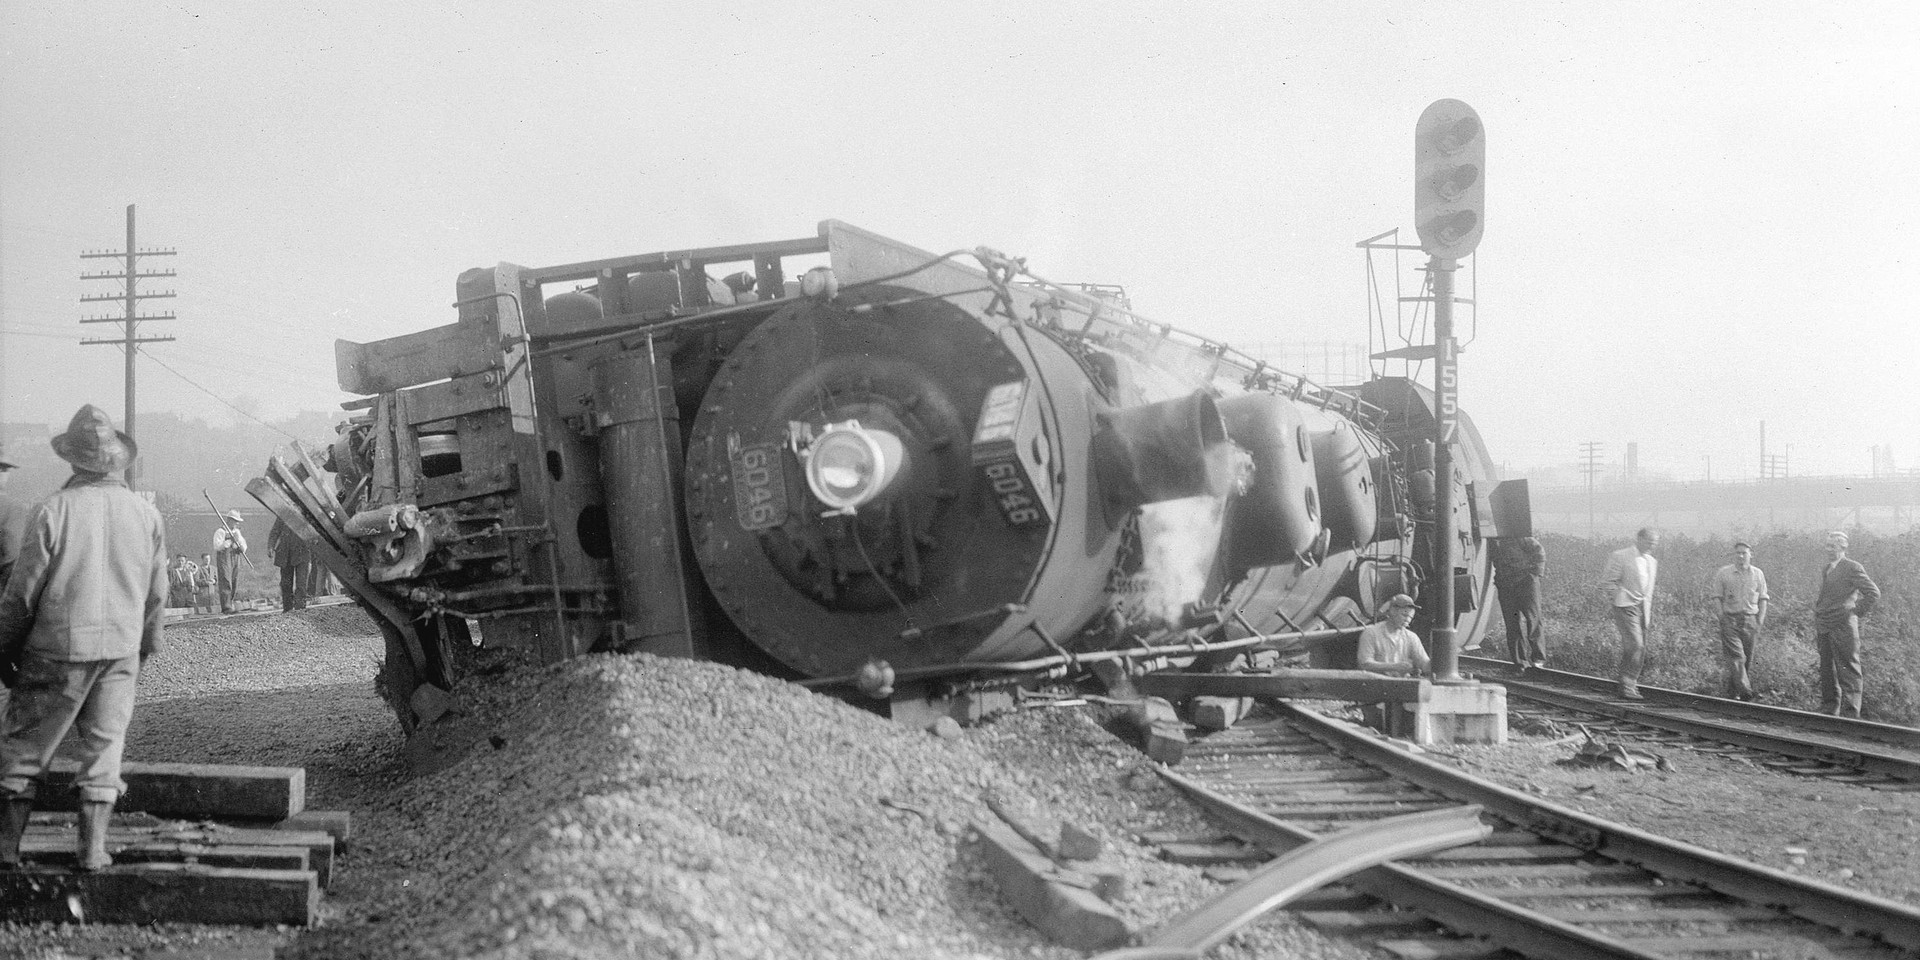 Canadian National Locomotive 6046 derailed